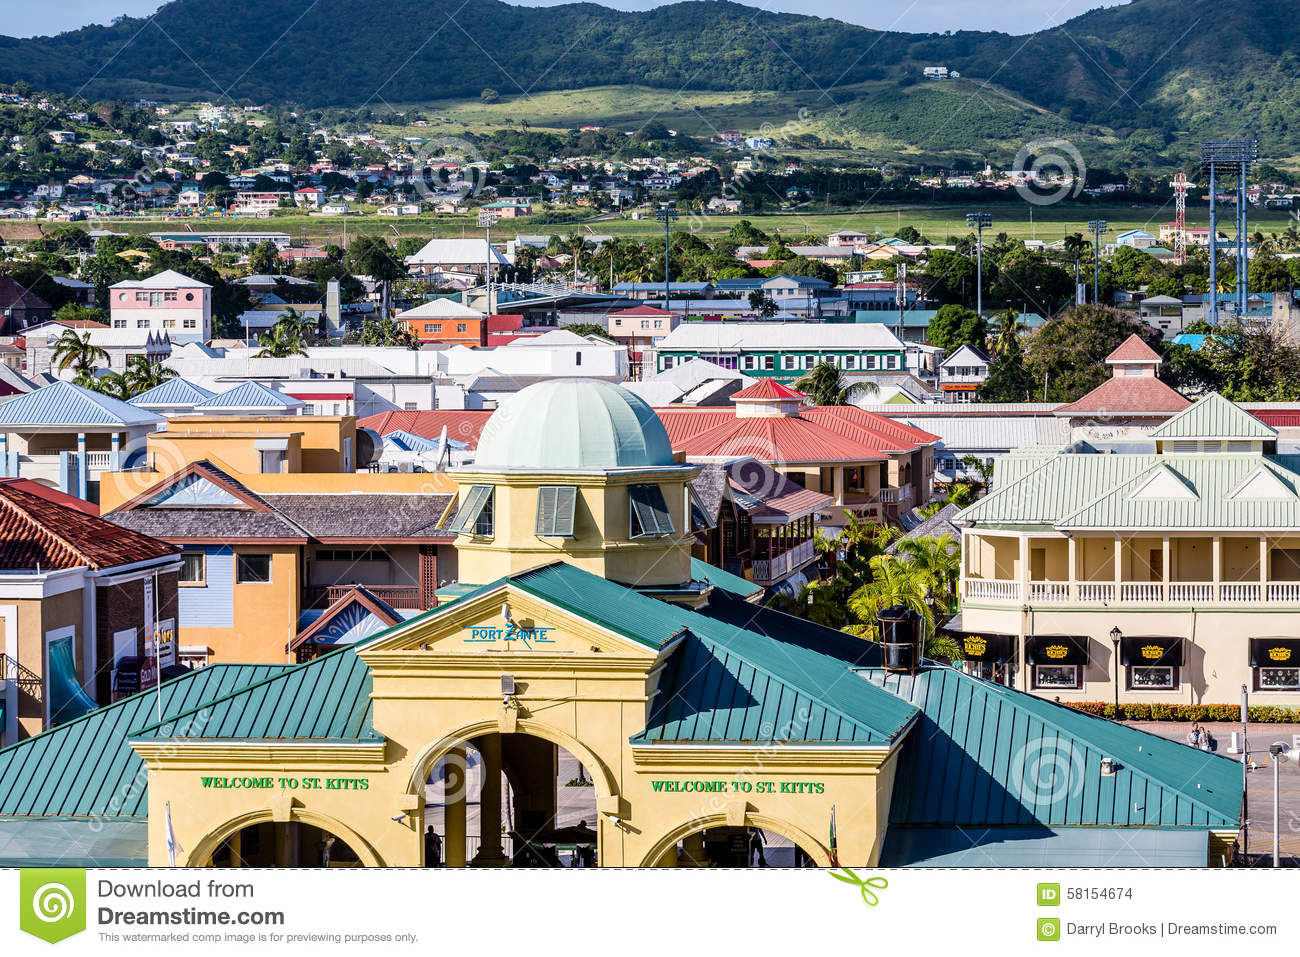 Port zante on st kitts editorial stock image image of green 58154674 for Port zante st kitts